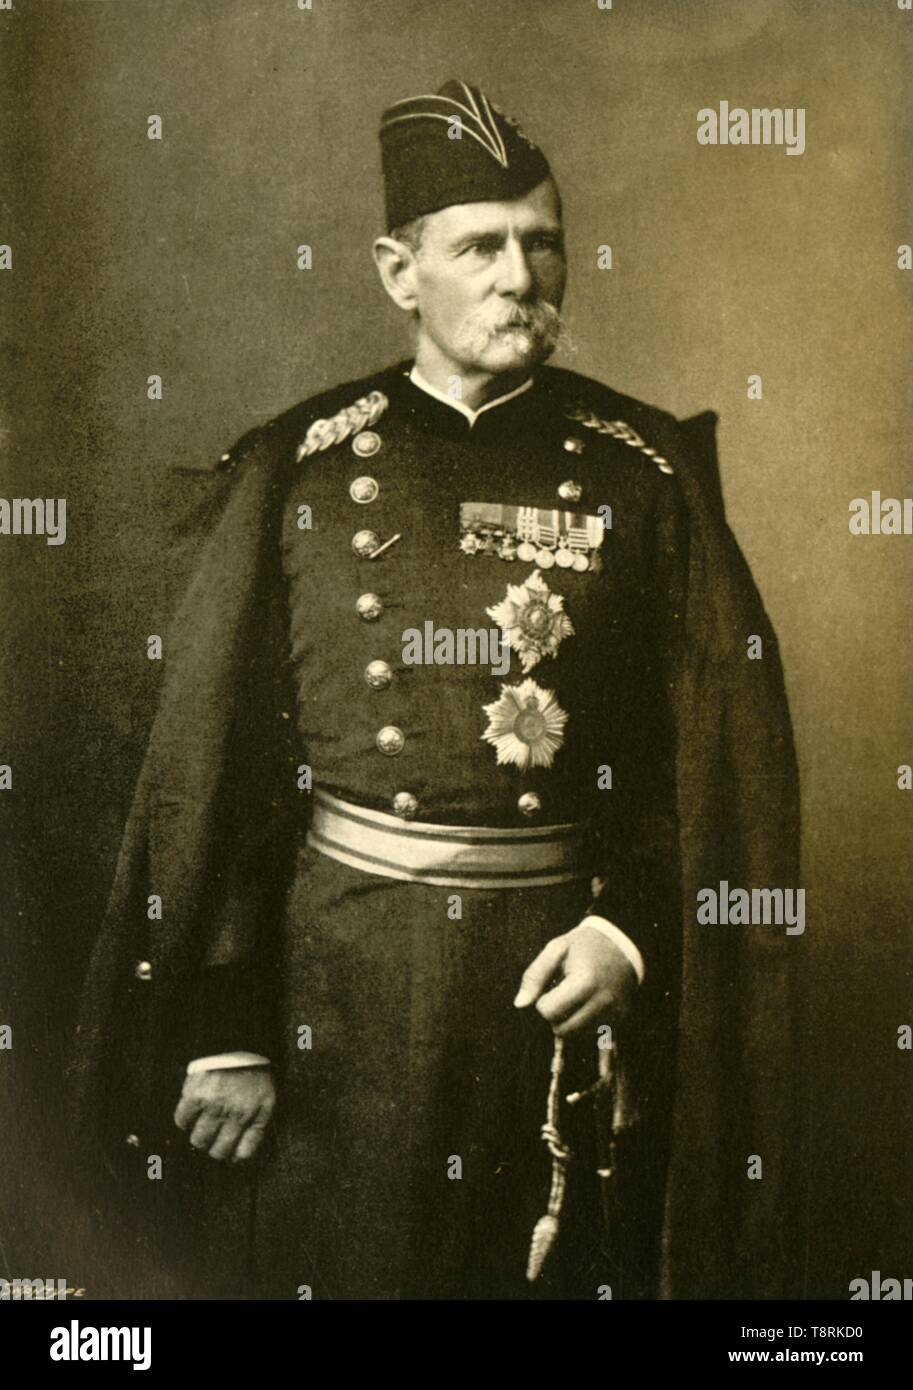 'Lord Roberts, 1st Baron of Kandahar, Commander-in-Chief of the Army in India', c1890s, (1901).  Creator: Bourne & Shepherd. - Stock Image